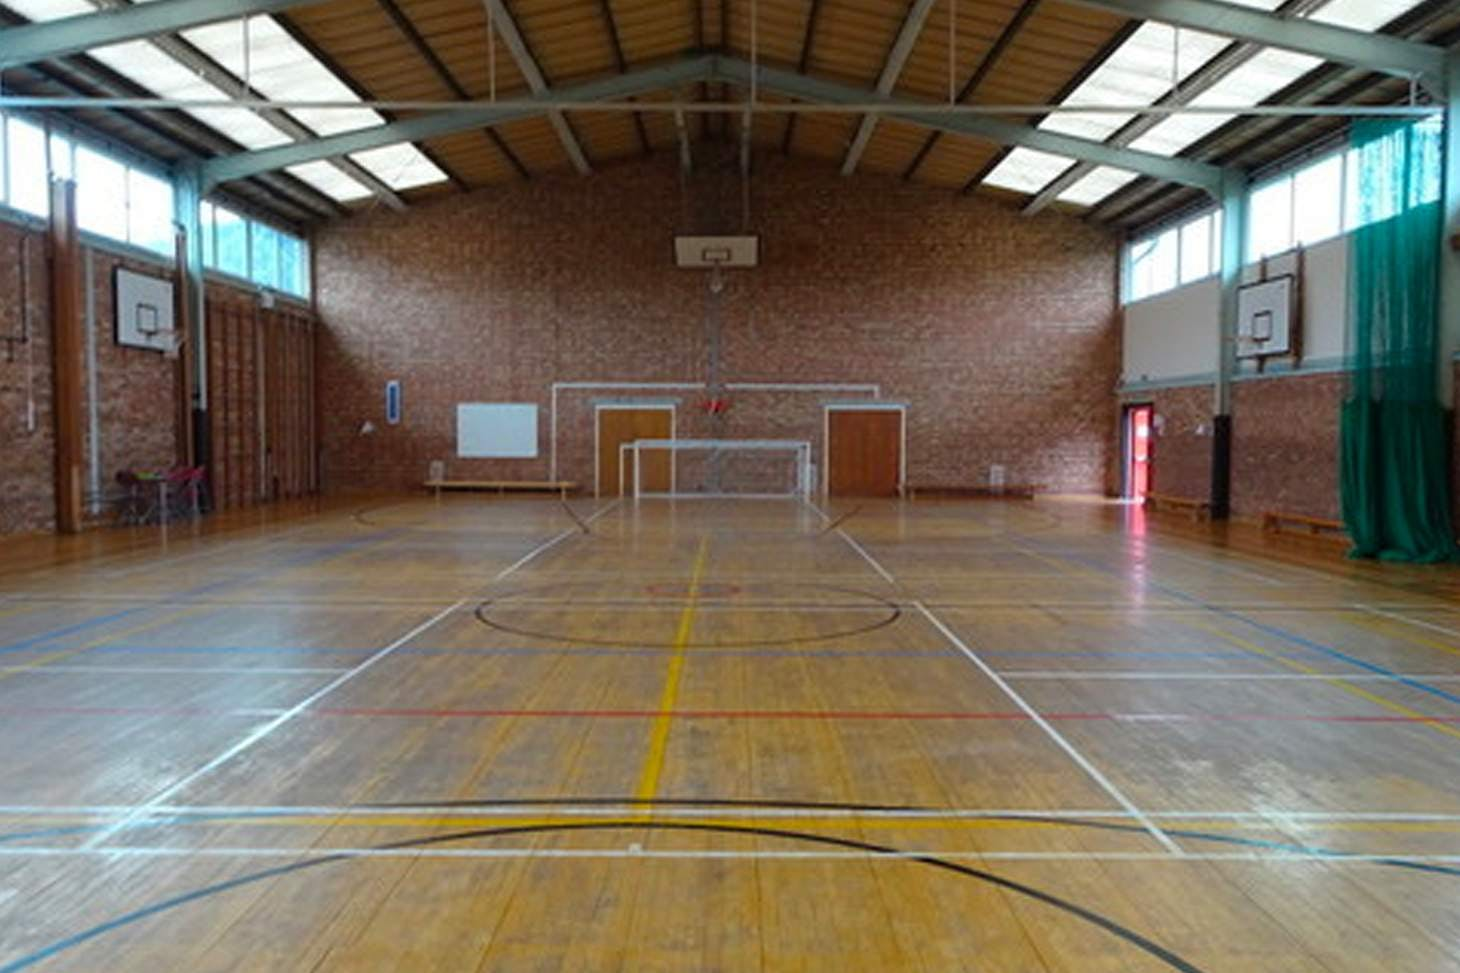 Trevelyan Middle School Court | Sports hall basketball court